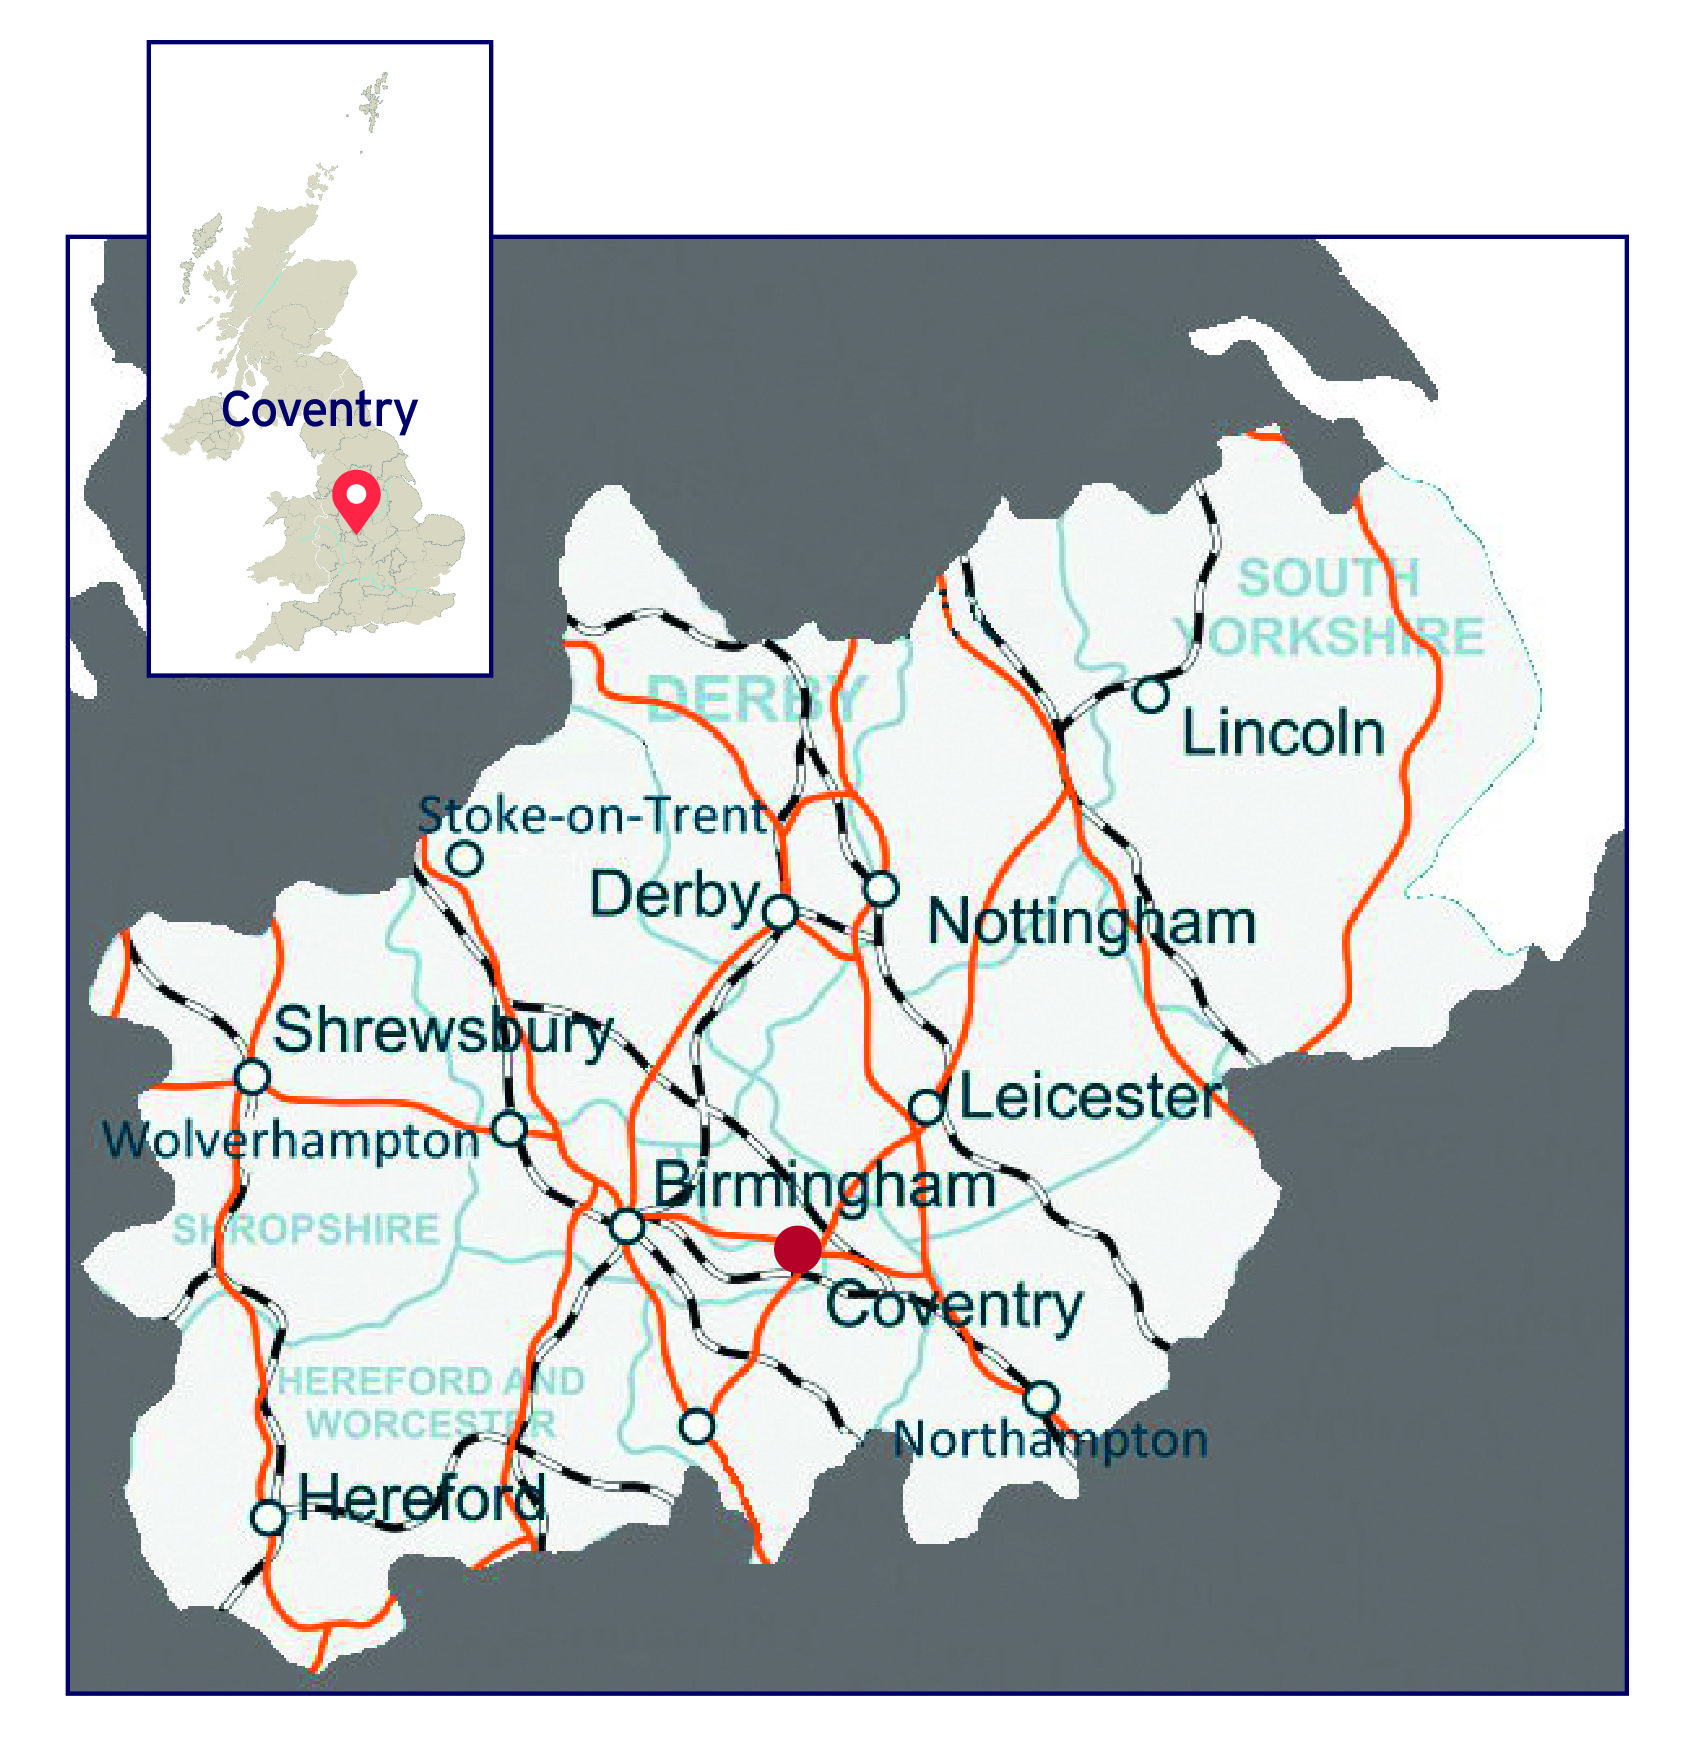 Map of English Midlands area with Coventry and its transport links